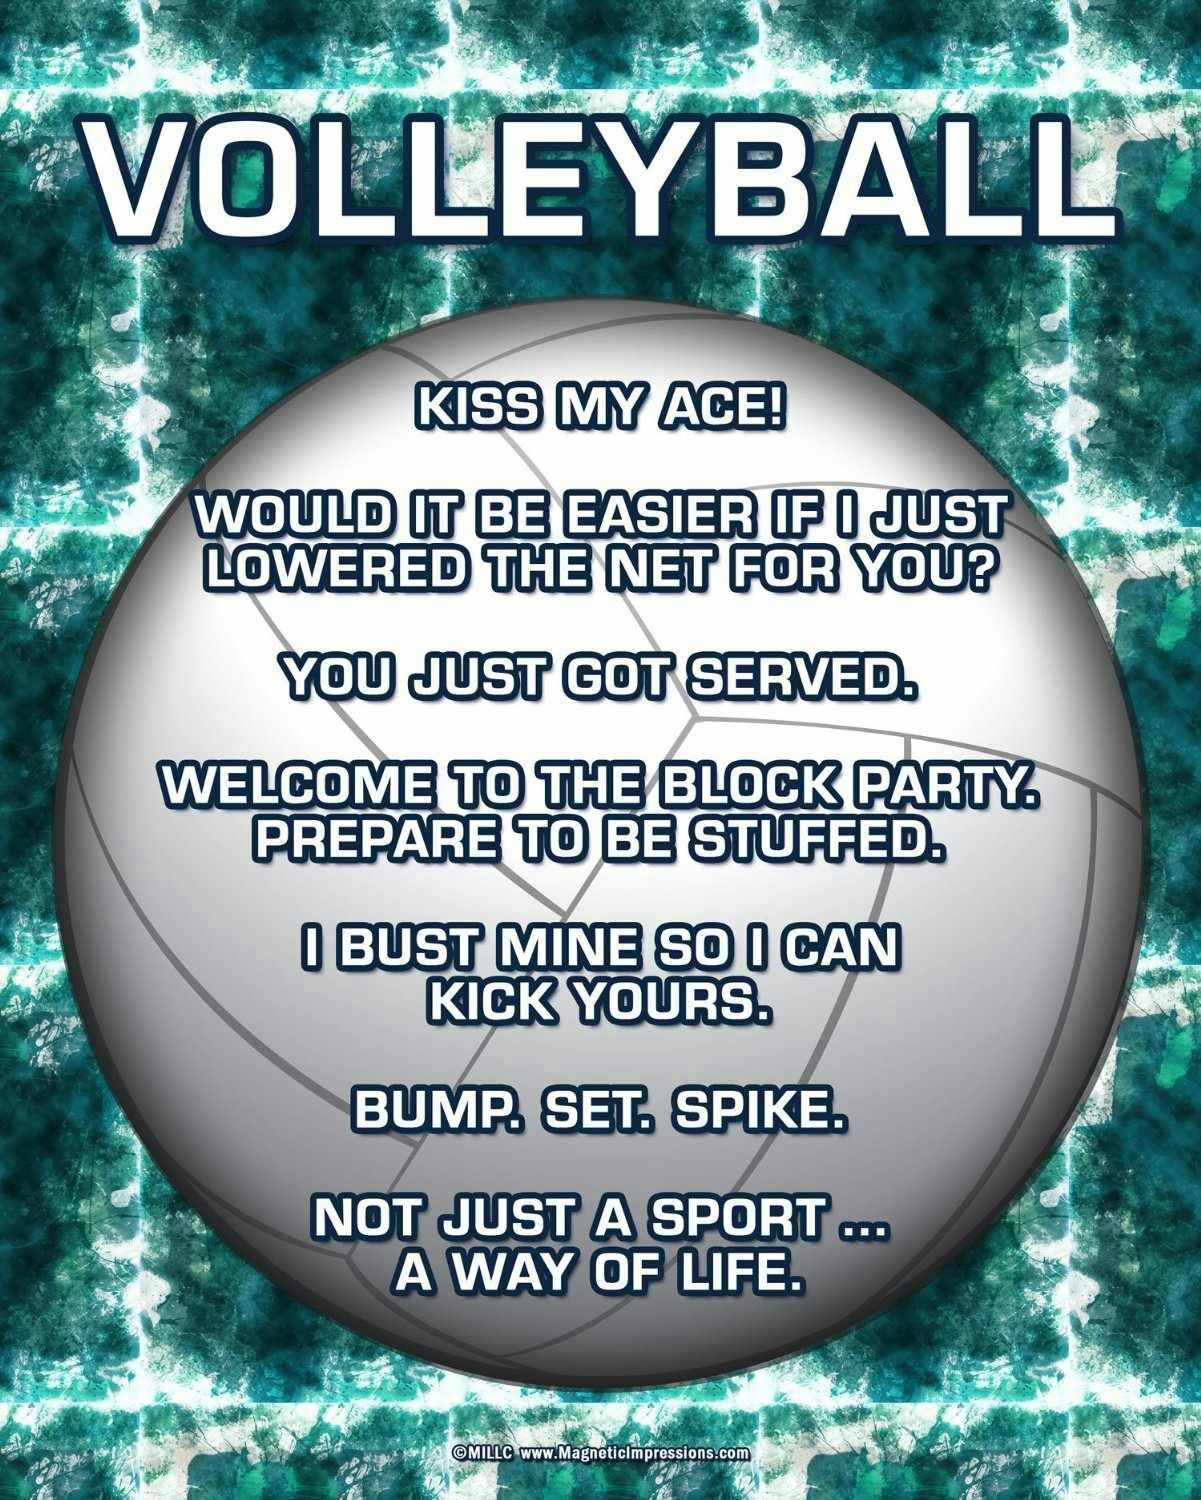 Pin By Anette Garcia On Volleyball 2 Volleyball Quotes Volleyball Humor Volleyball Jokes